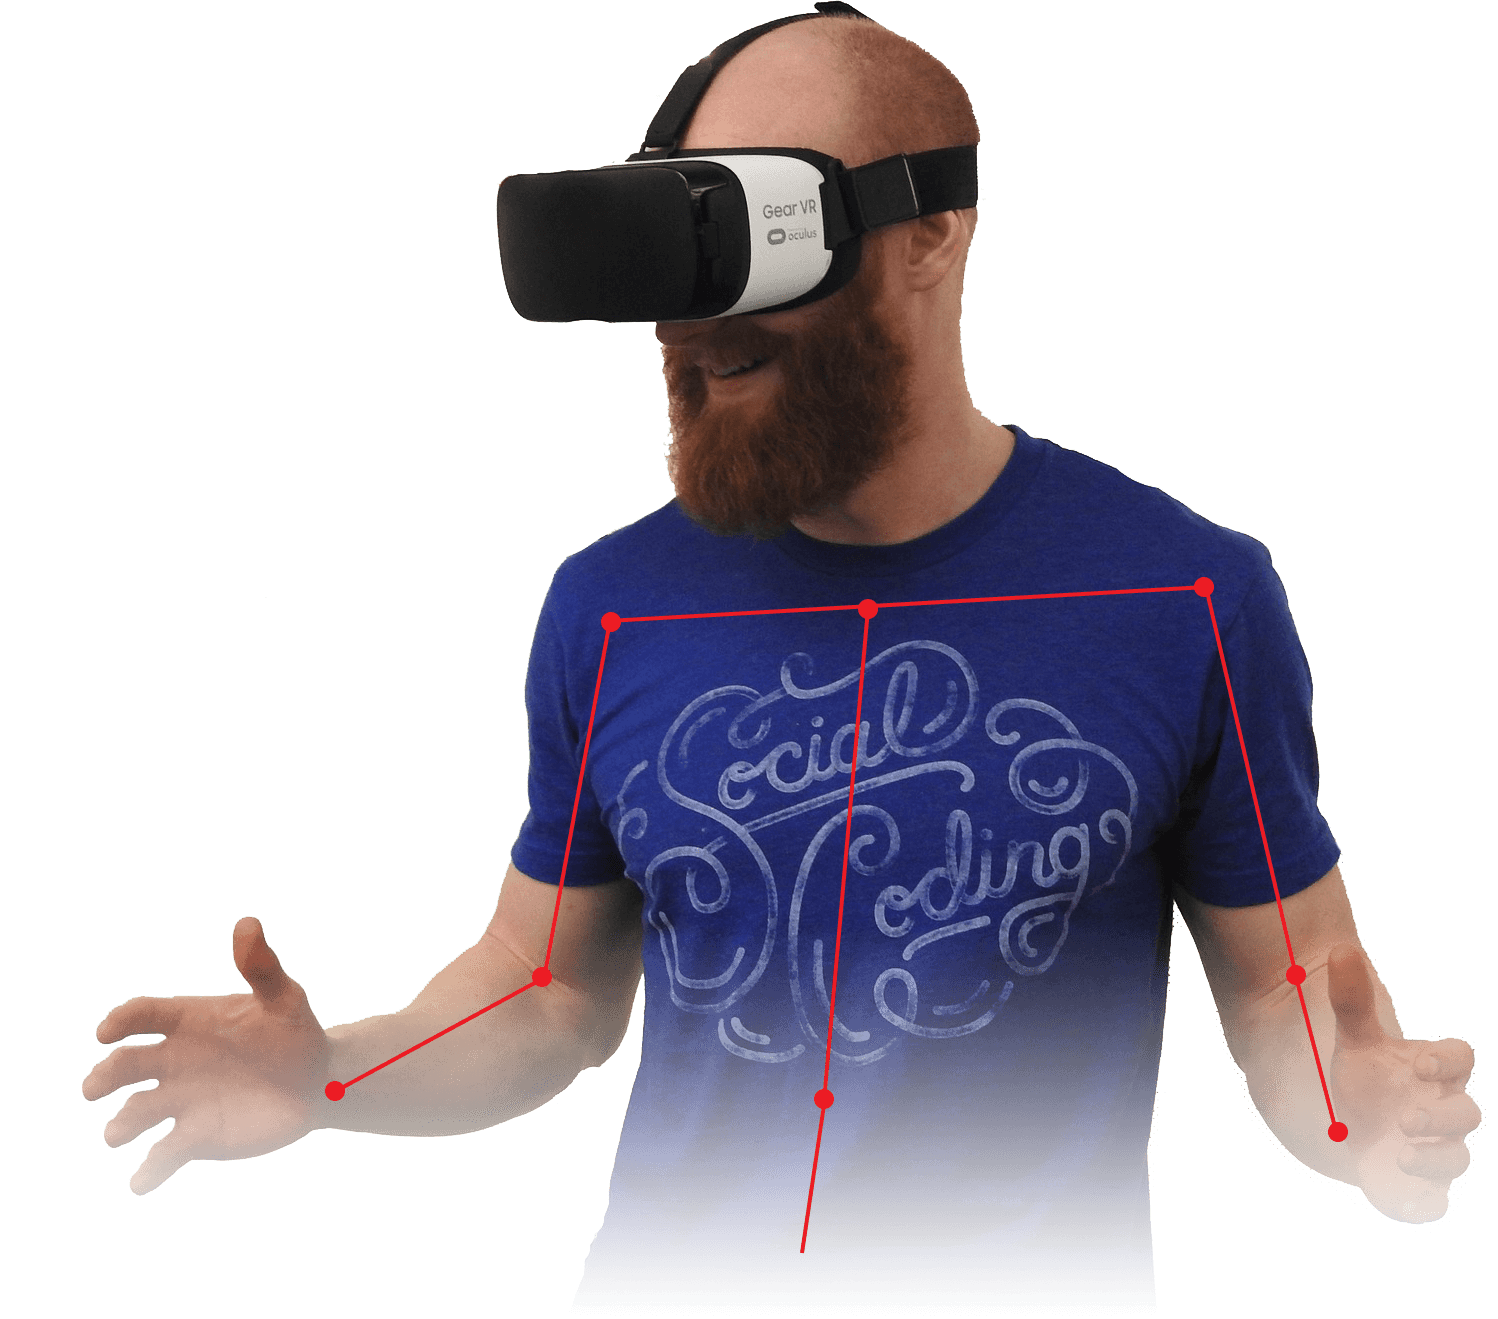 Person VR Body Tracking